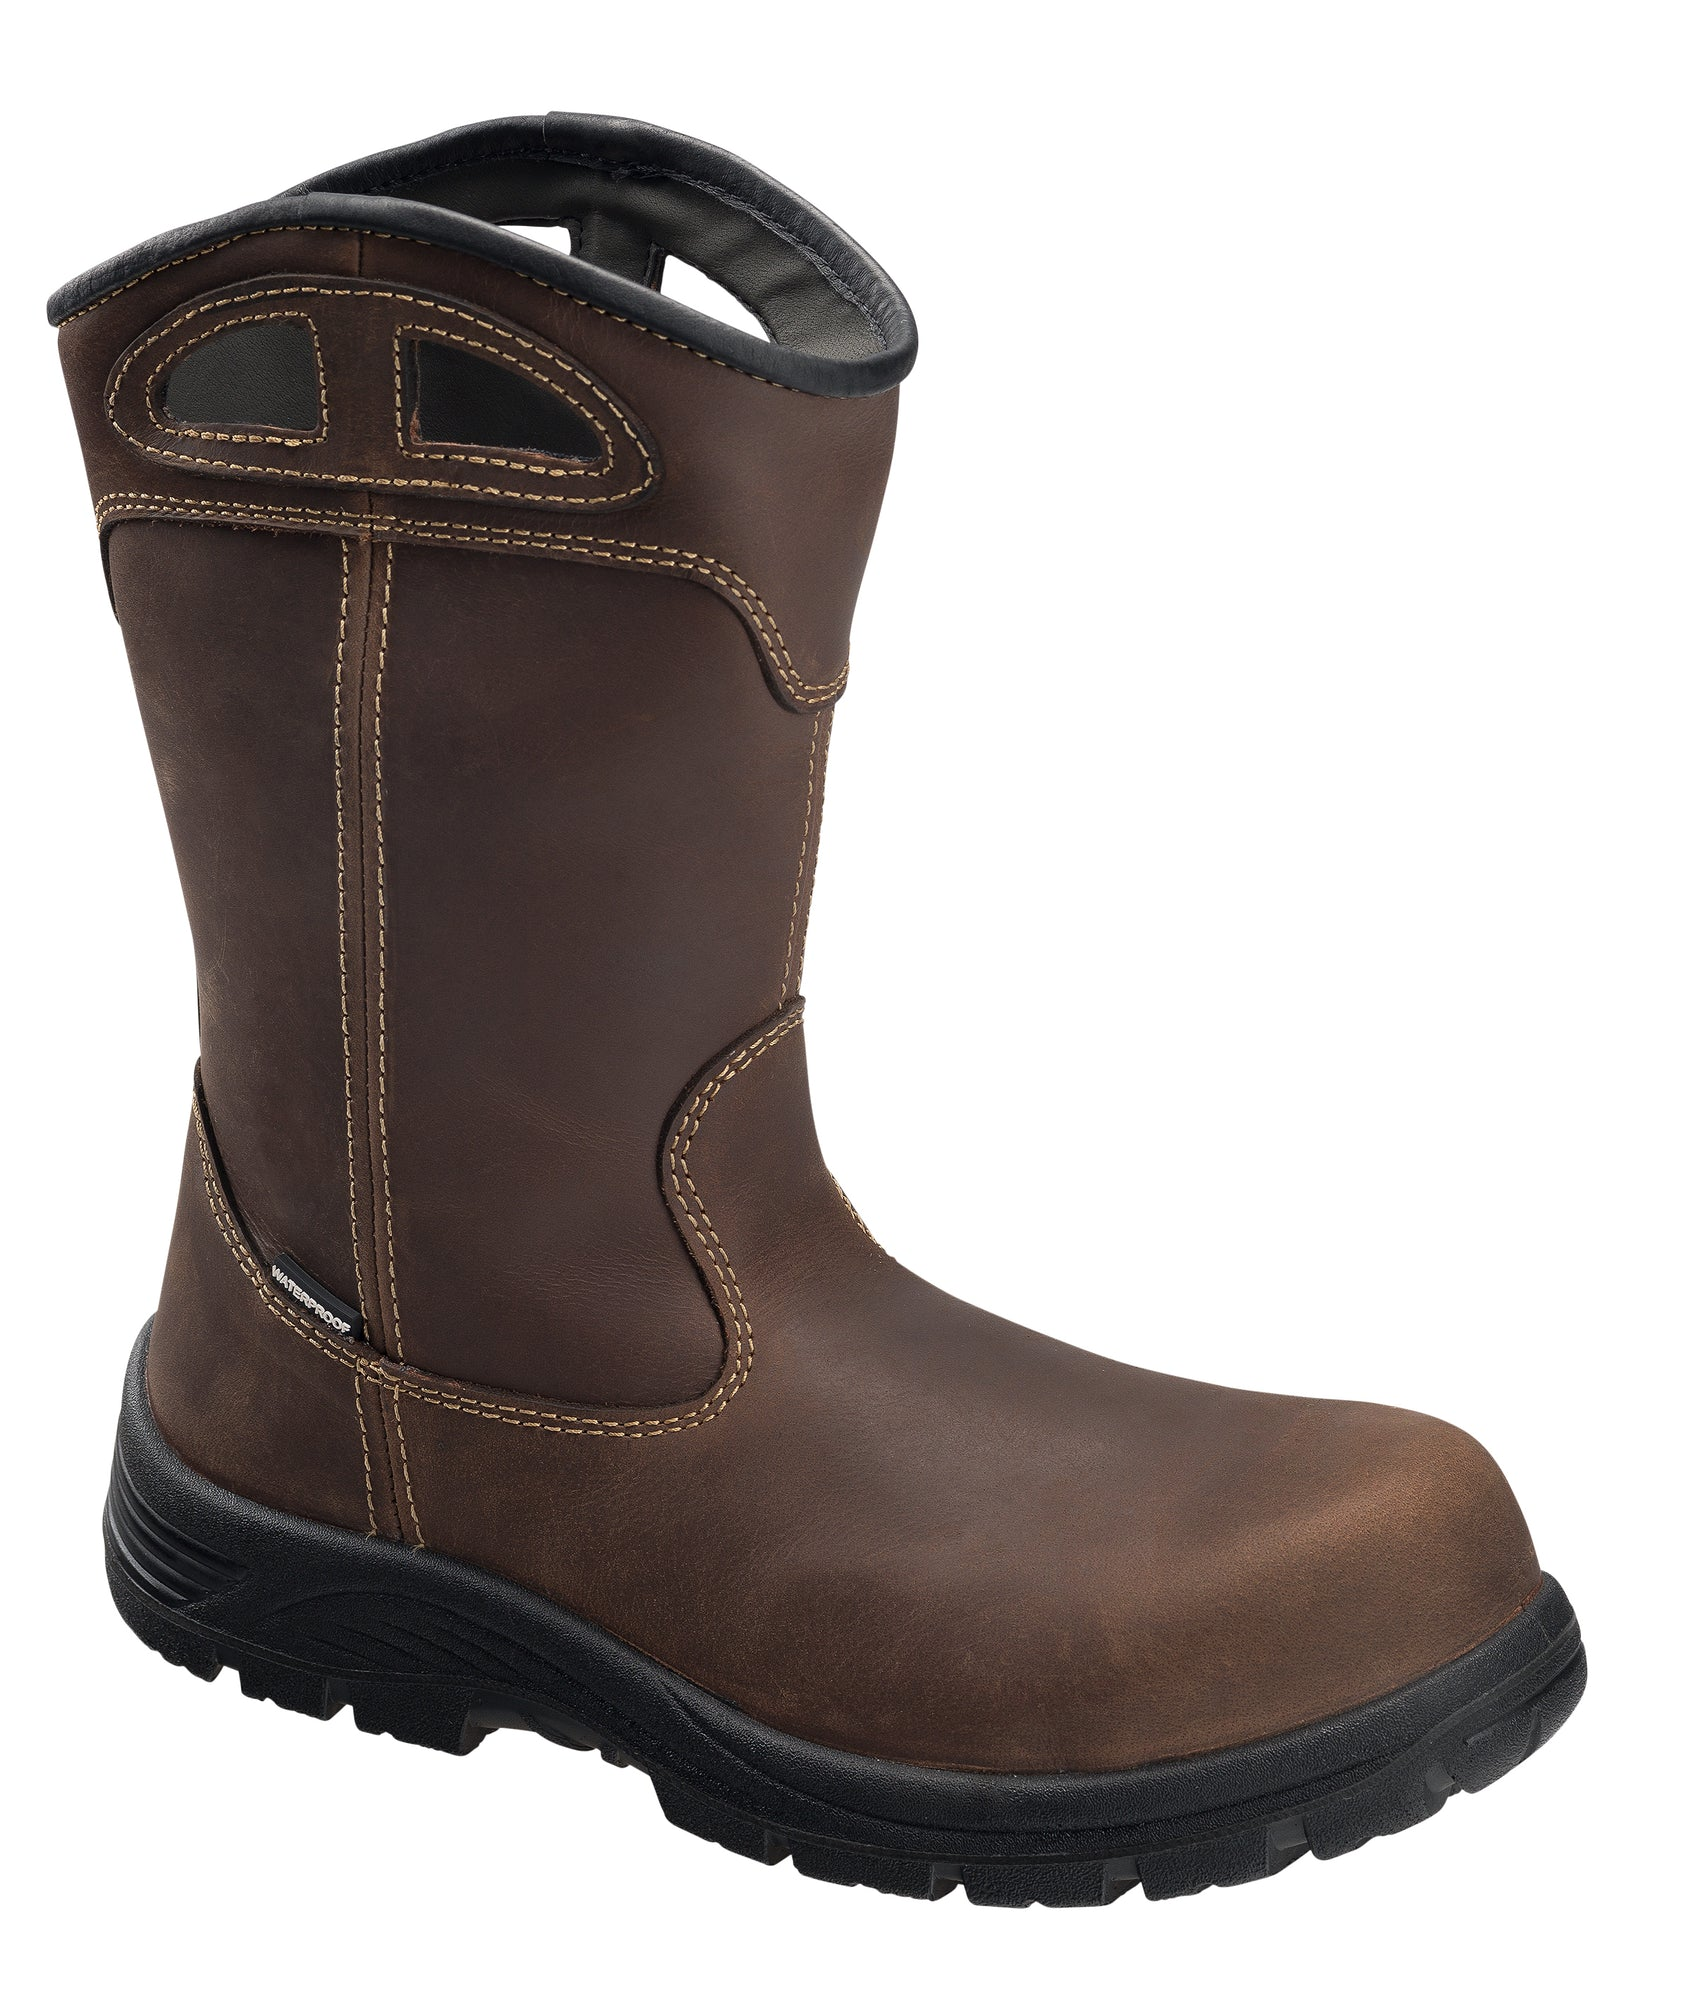 Framer Brown Composite Toe EH WP 11